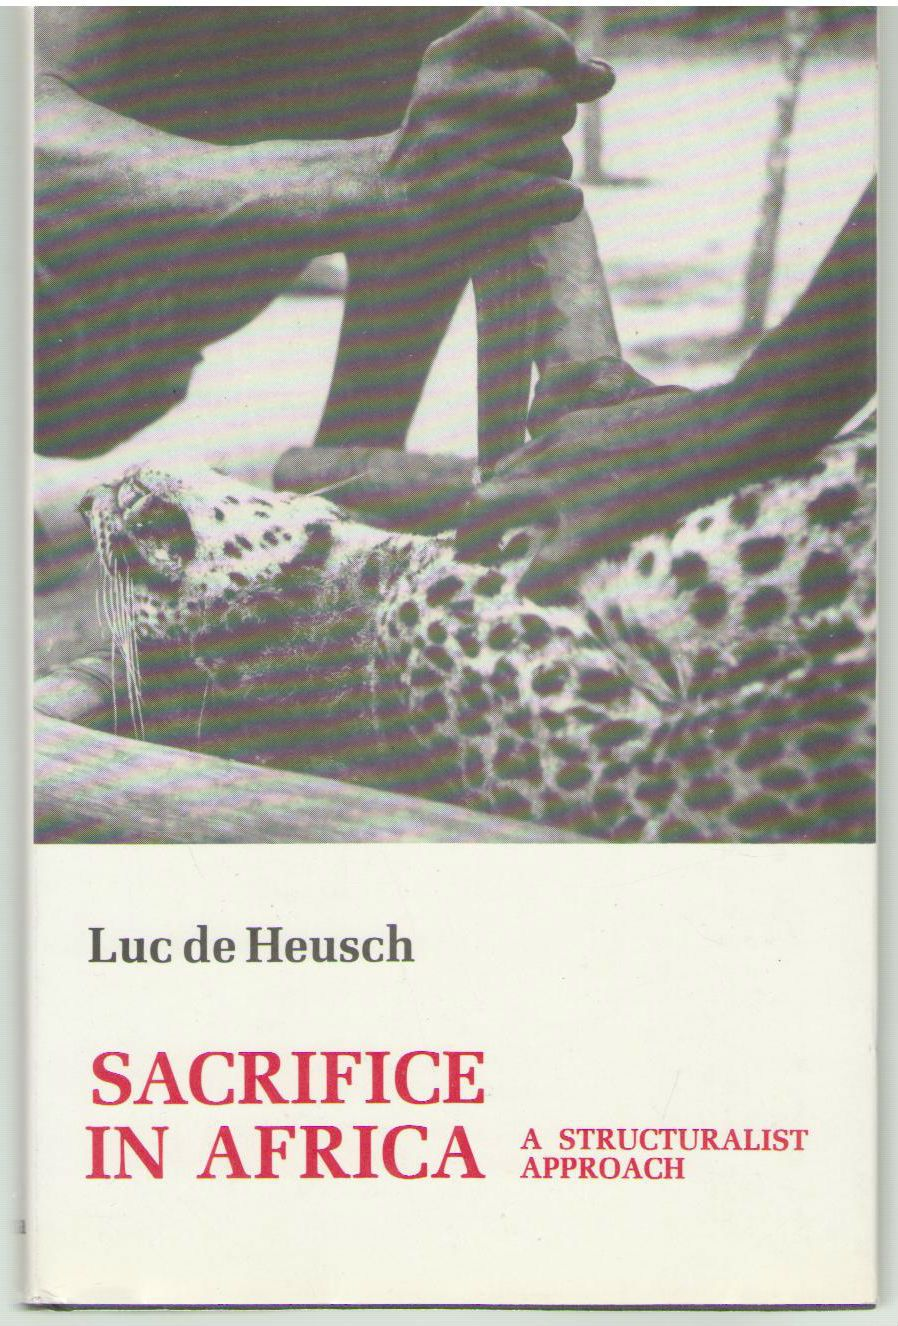 Sacrifice in Africa: A Structuralist Approach (African Systems of Thought), Luc Deheusch